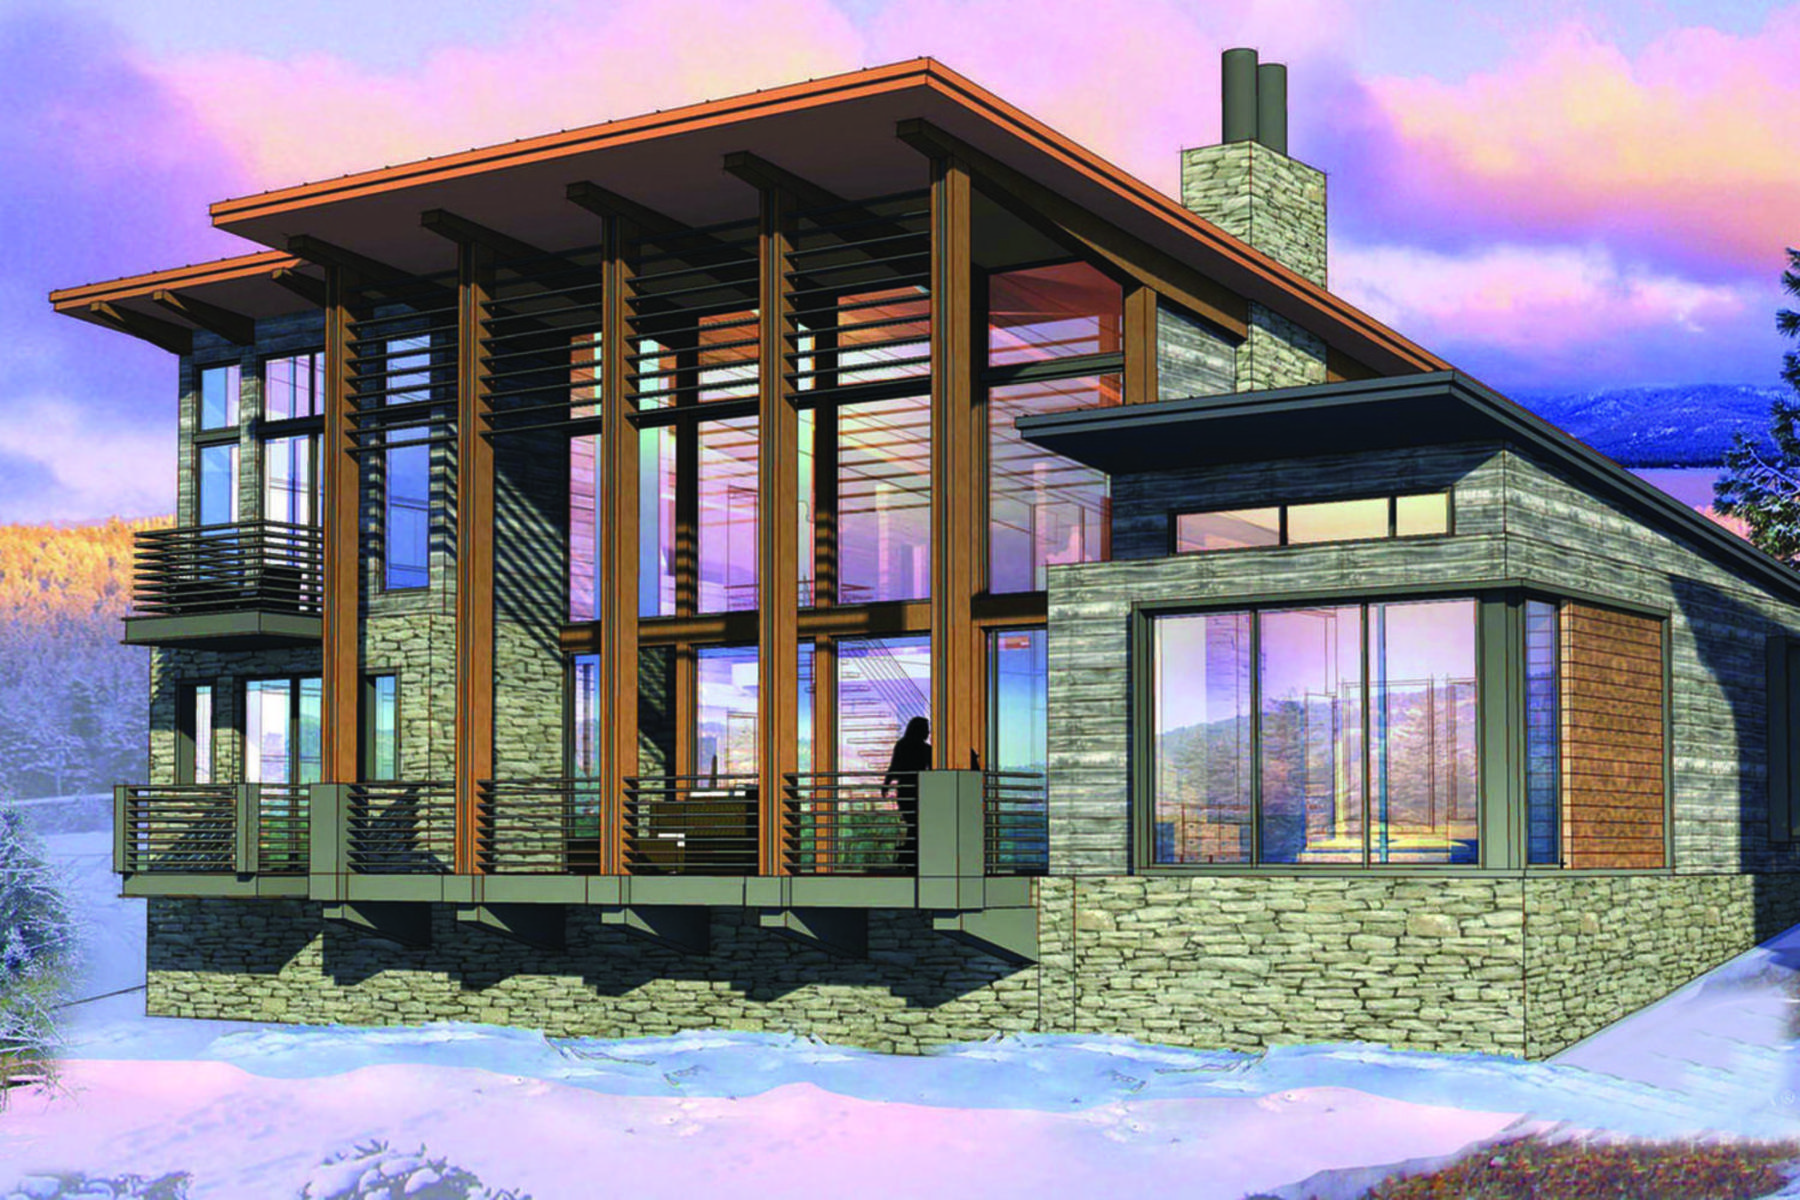 Moradia para Venda às New Nicklaus Golf Cabin Promontory 6650 Golden Bear Loop West Park City, Utah, 84098 Estados Unidos